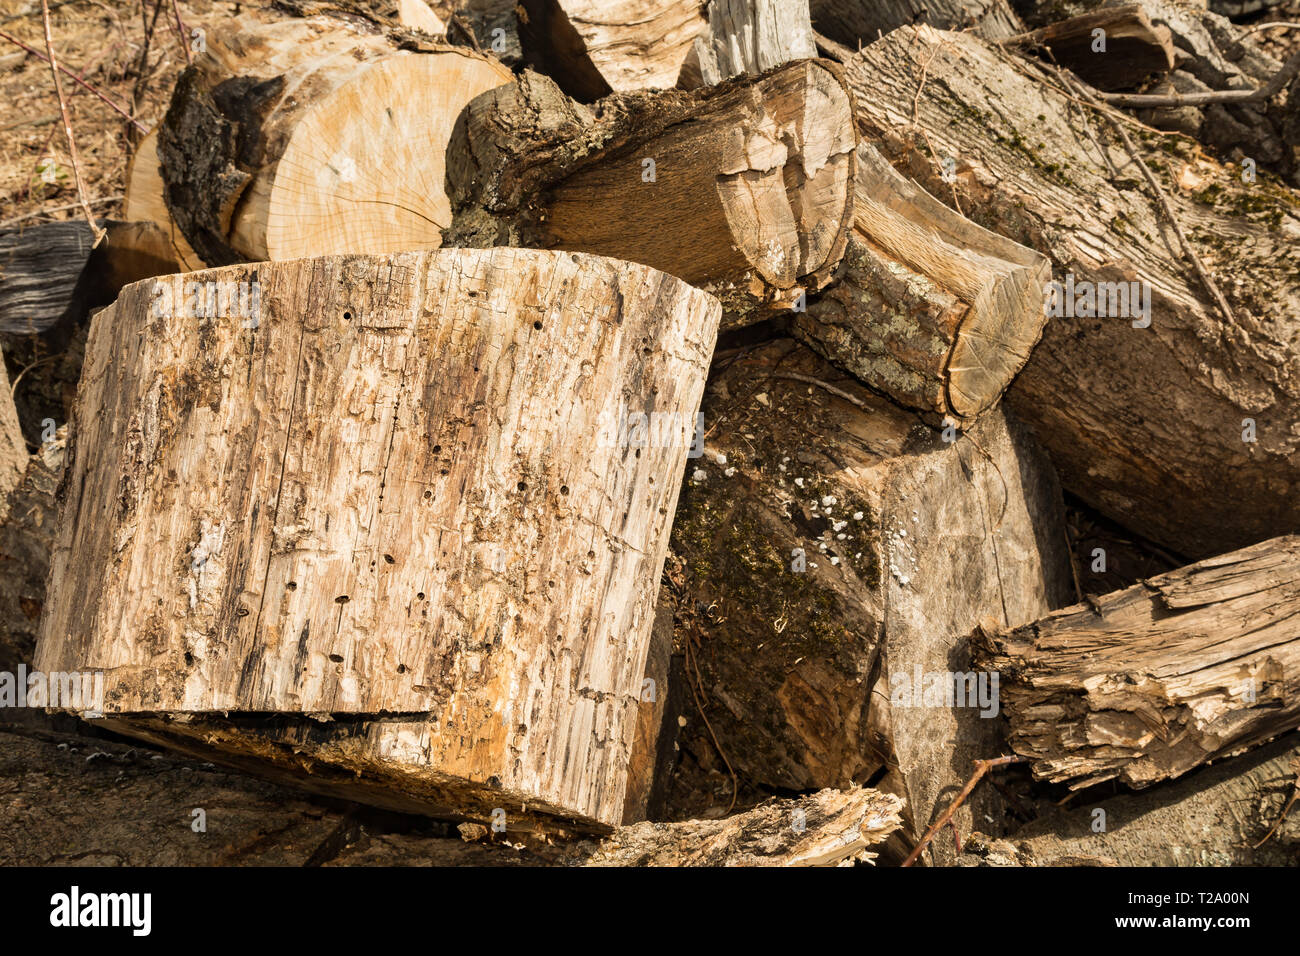 Firewood infested with Emerald Ash Boring Beetles - Stock Image